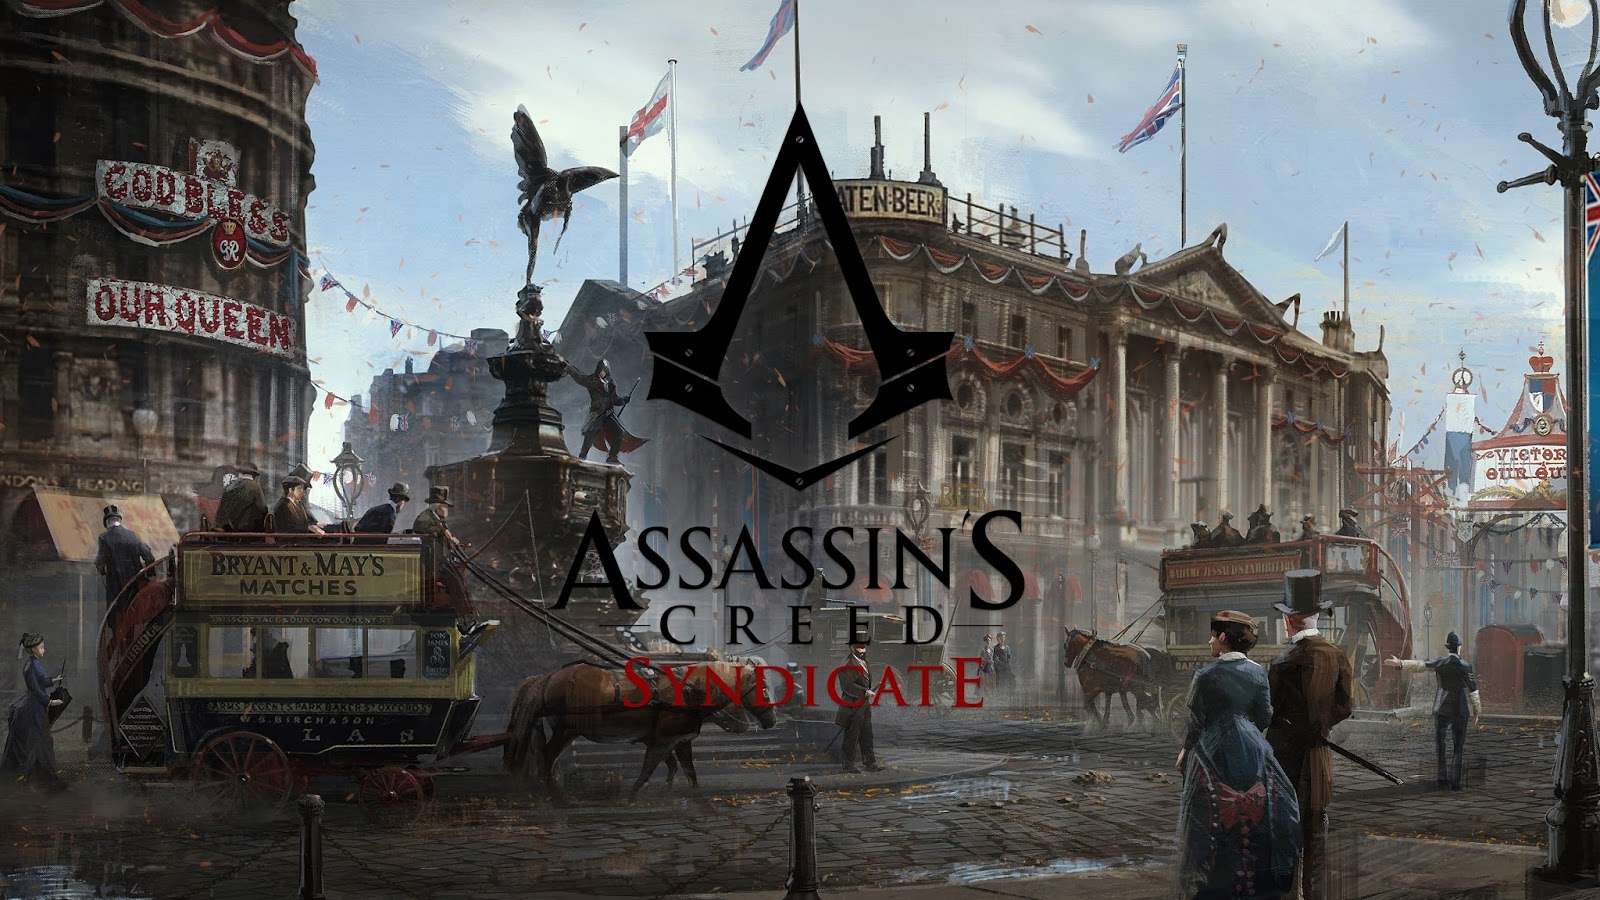 Assassins Creed Syndicate Wallpaper Hd